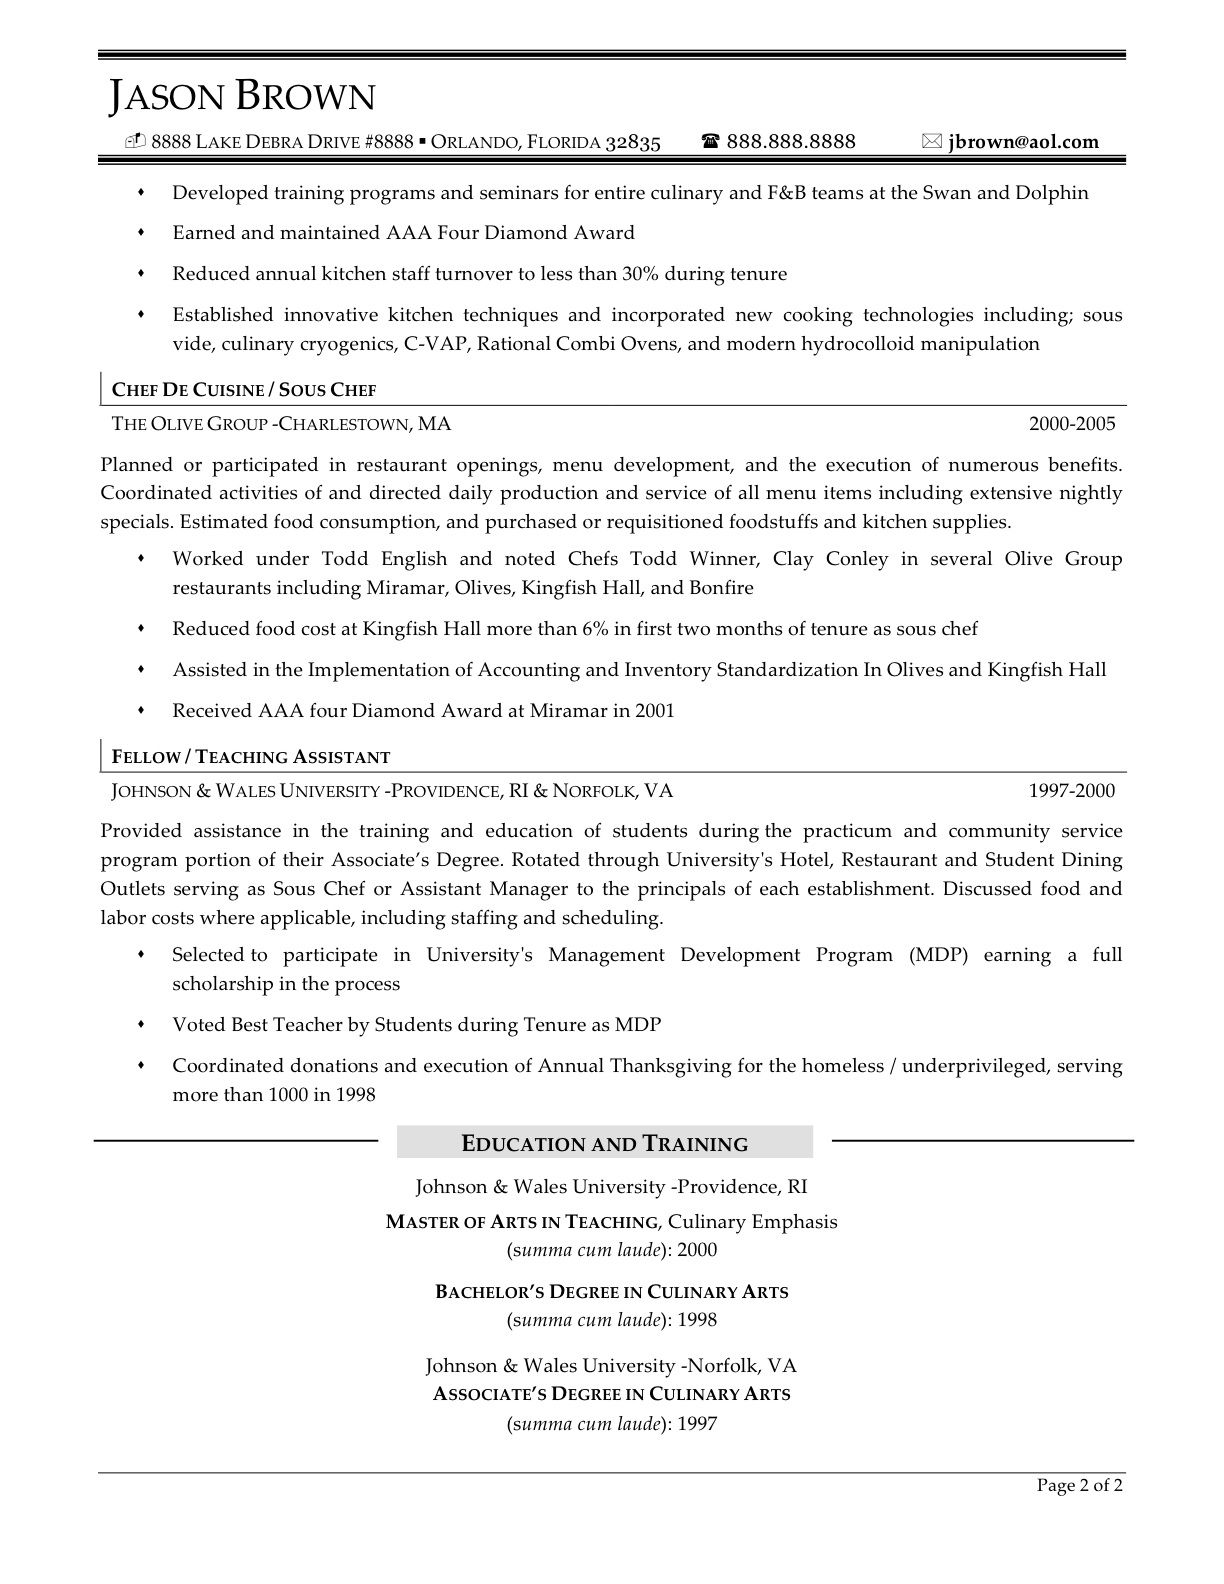 Chef Cook Resume Examples  HttpWwwJobresumeWebsiteChefCook